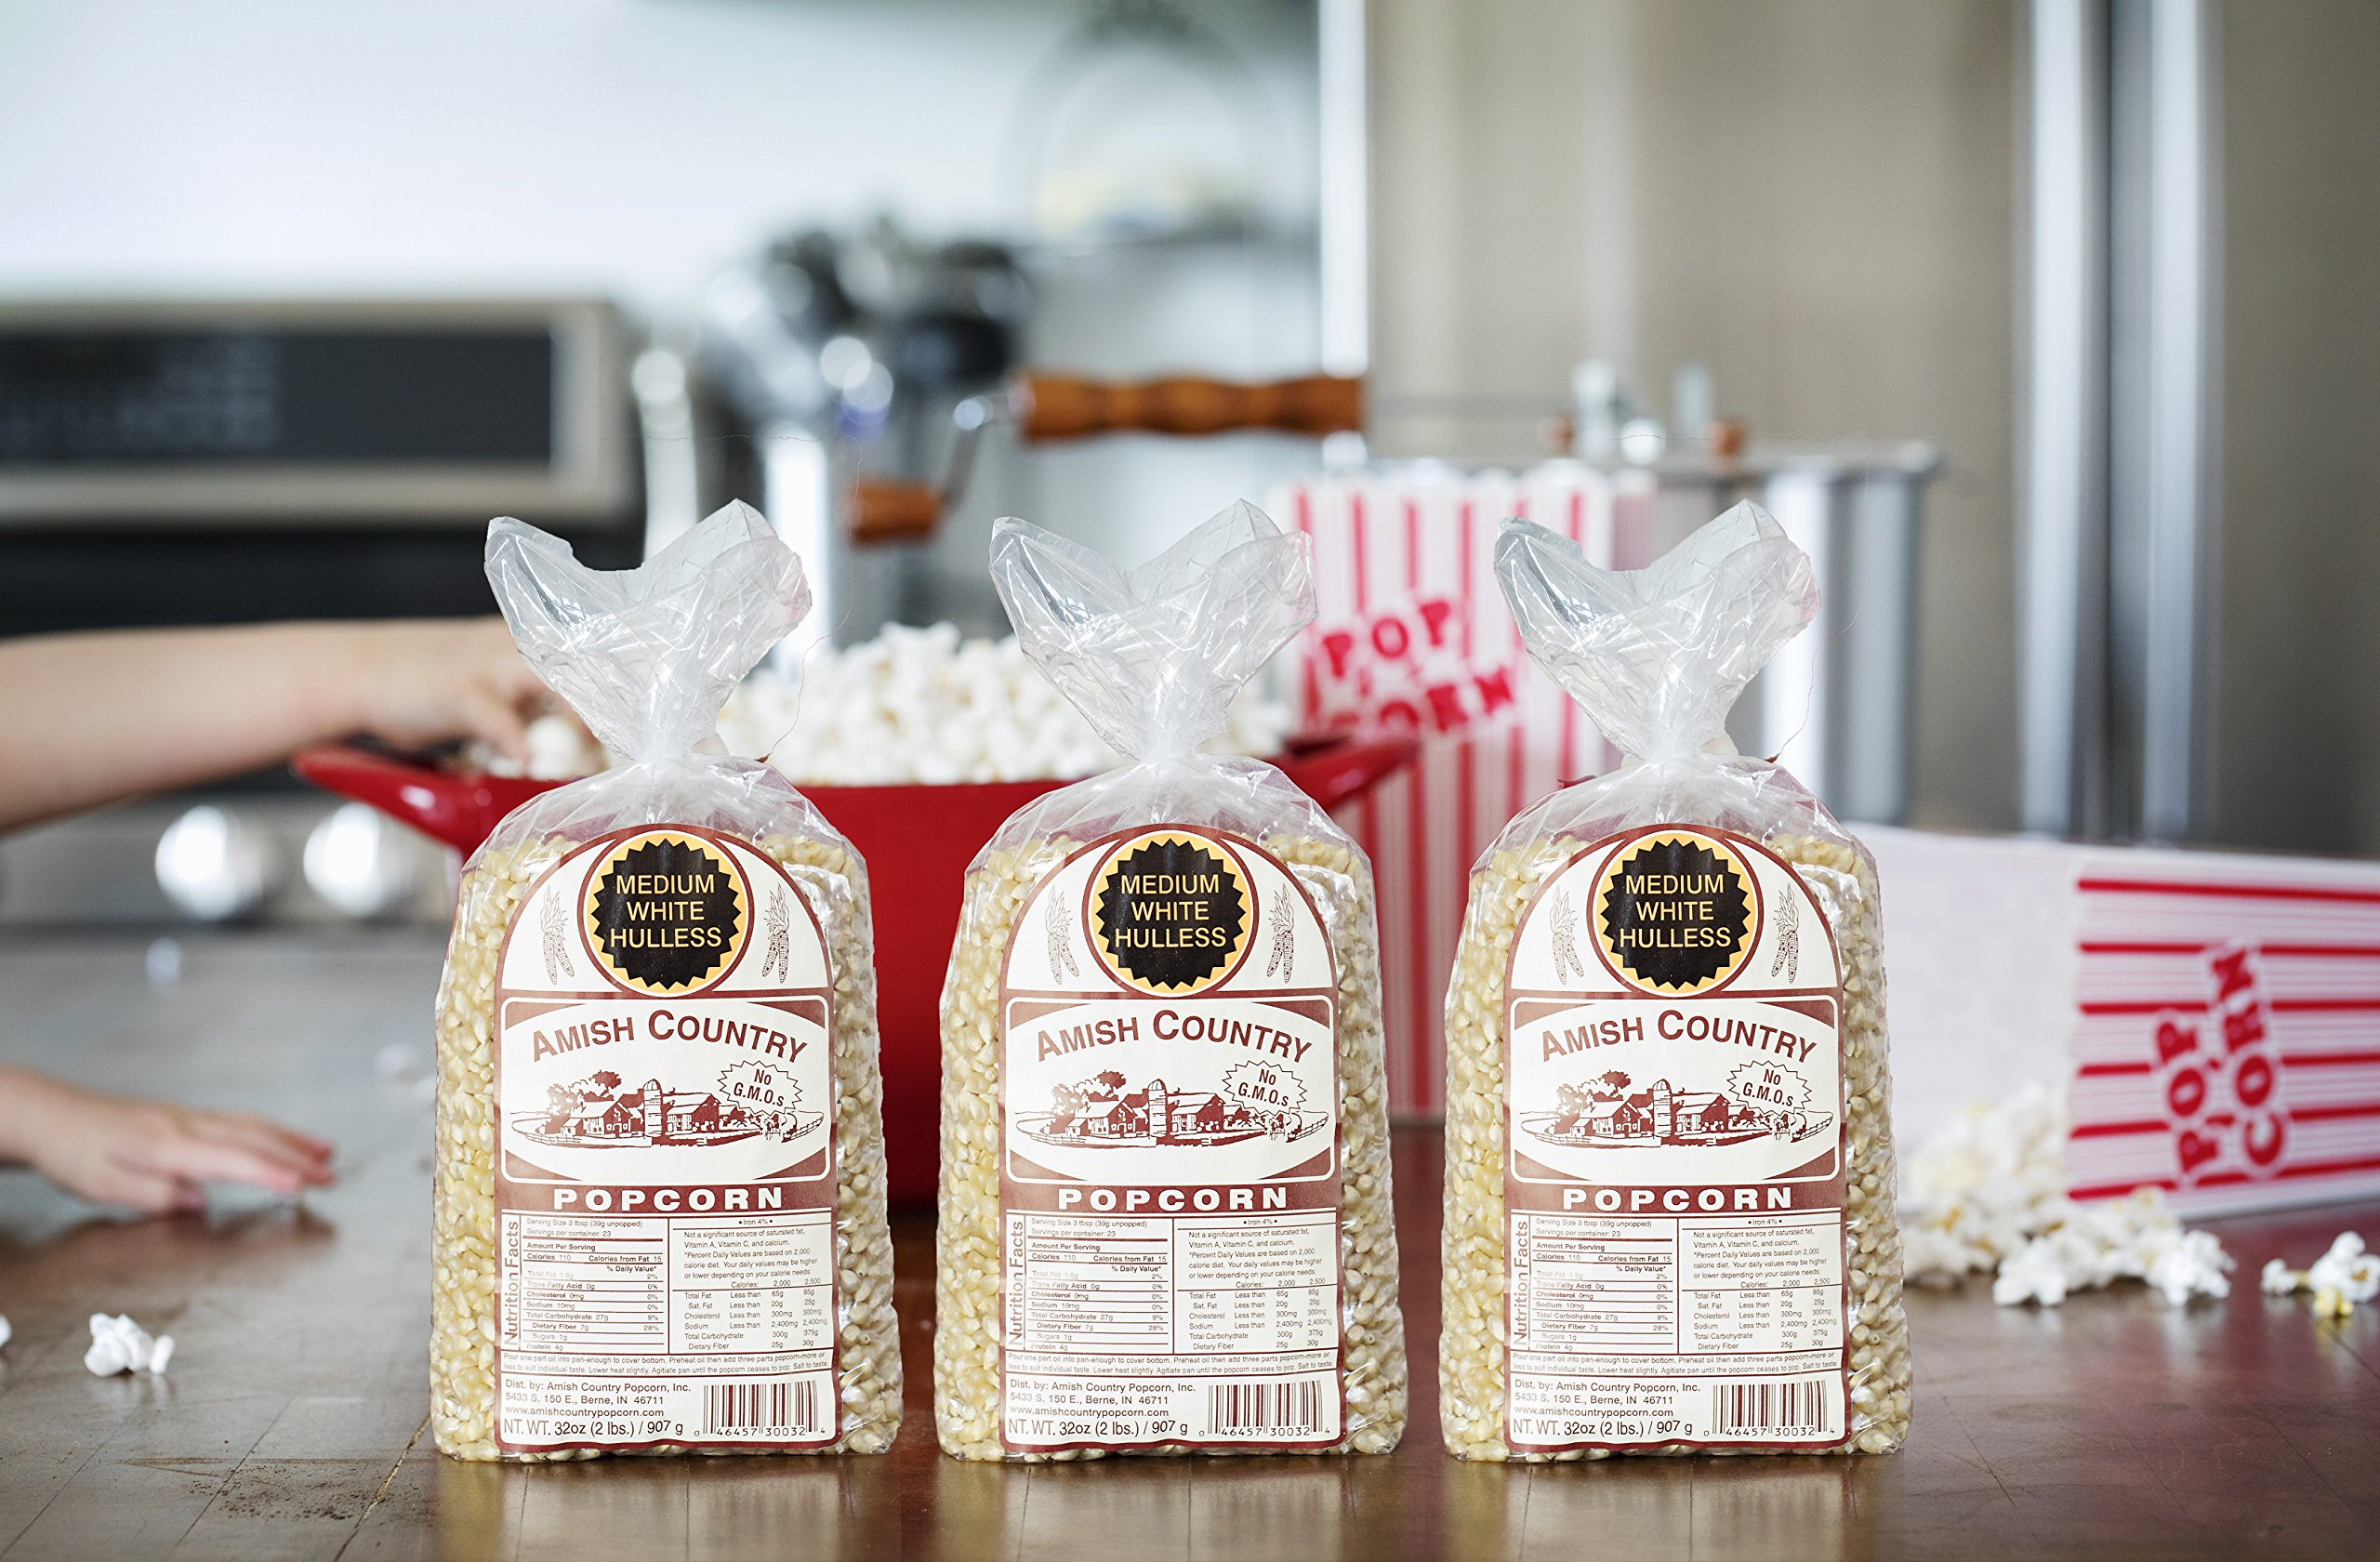 Amish Country Popcorn - 3 (2 Pound Bags) Medium White Popcorn Gift Set Old Fashioned, Non GMO and Gluten Free - With Recipe Guide by Amish Country Popcorn (Image #5)